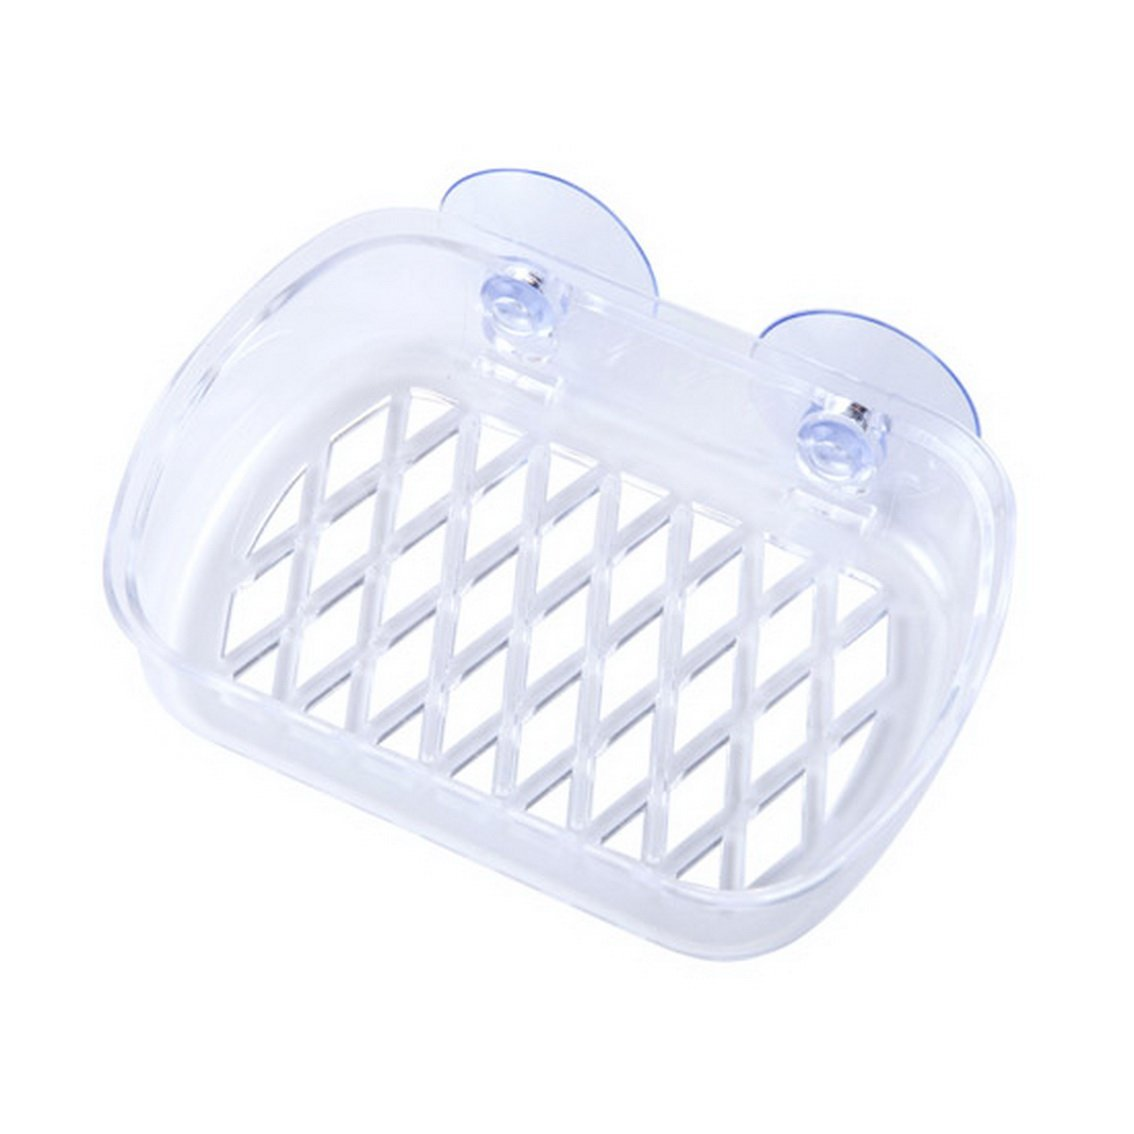 fengg2030shann Plastic suction cups suction wall soap box type drain soap dish soap box soap sponge wall shelving rack. Sucker soap box Soap box sucker soap box Soap holder sucker soap box racks